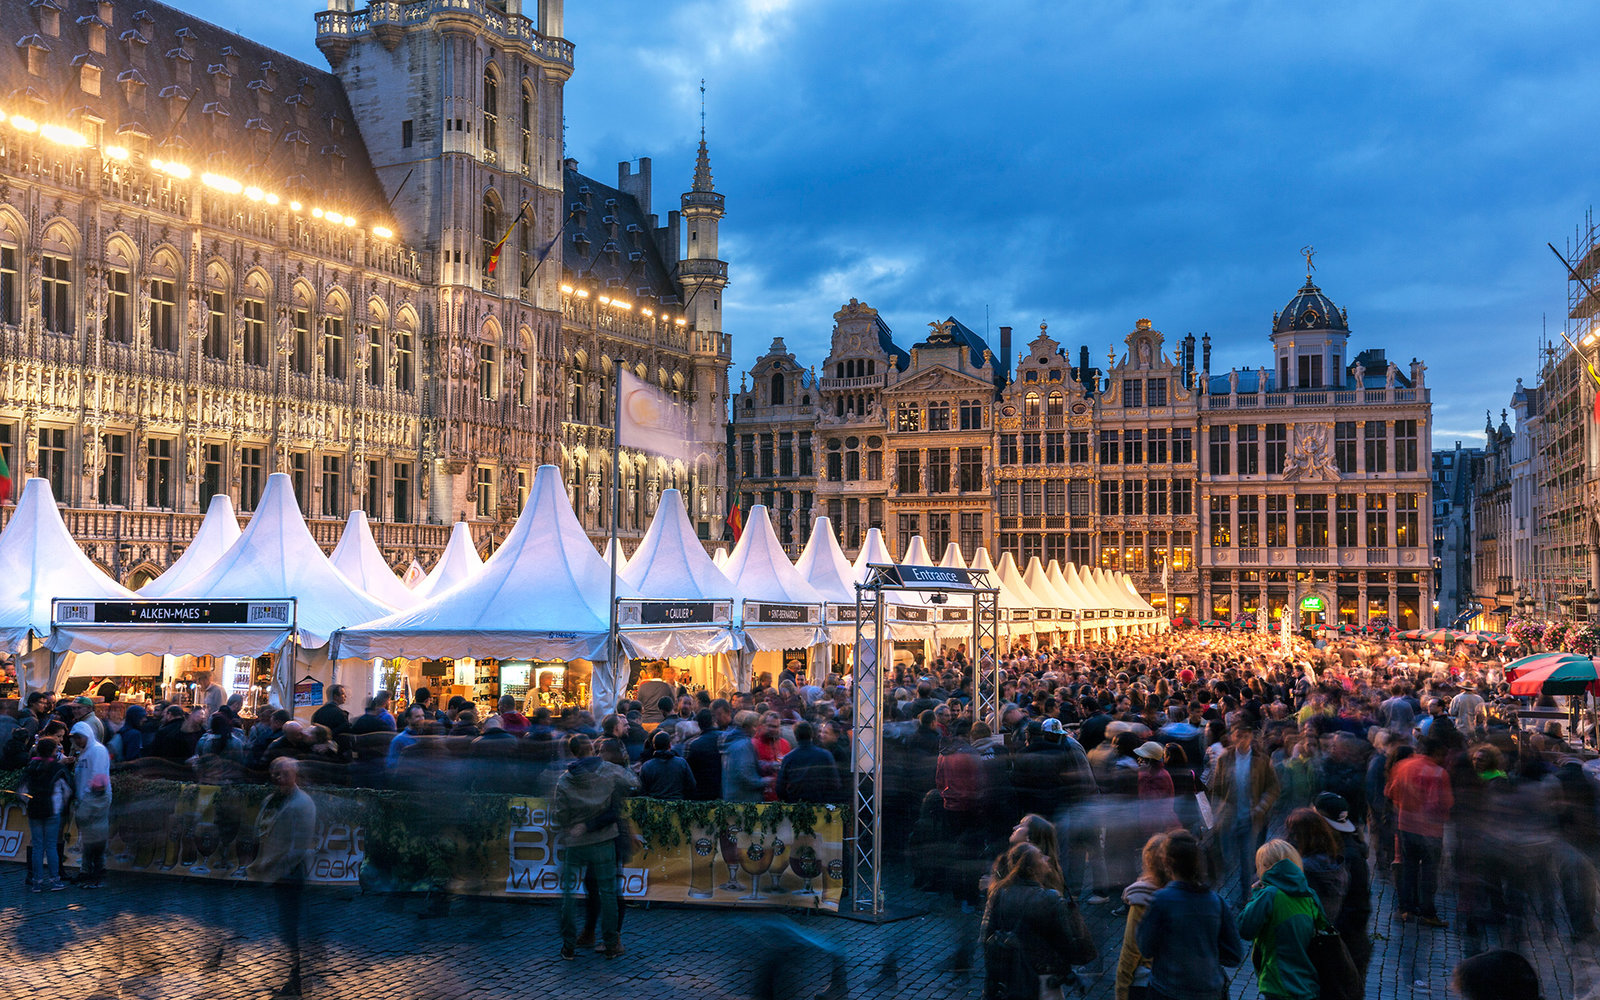 Beer festival in Grand Place (Grote Markt)